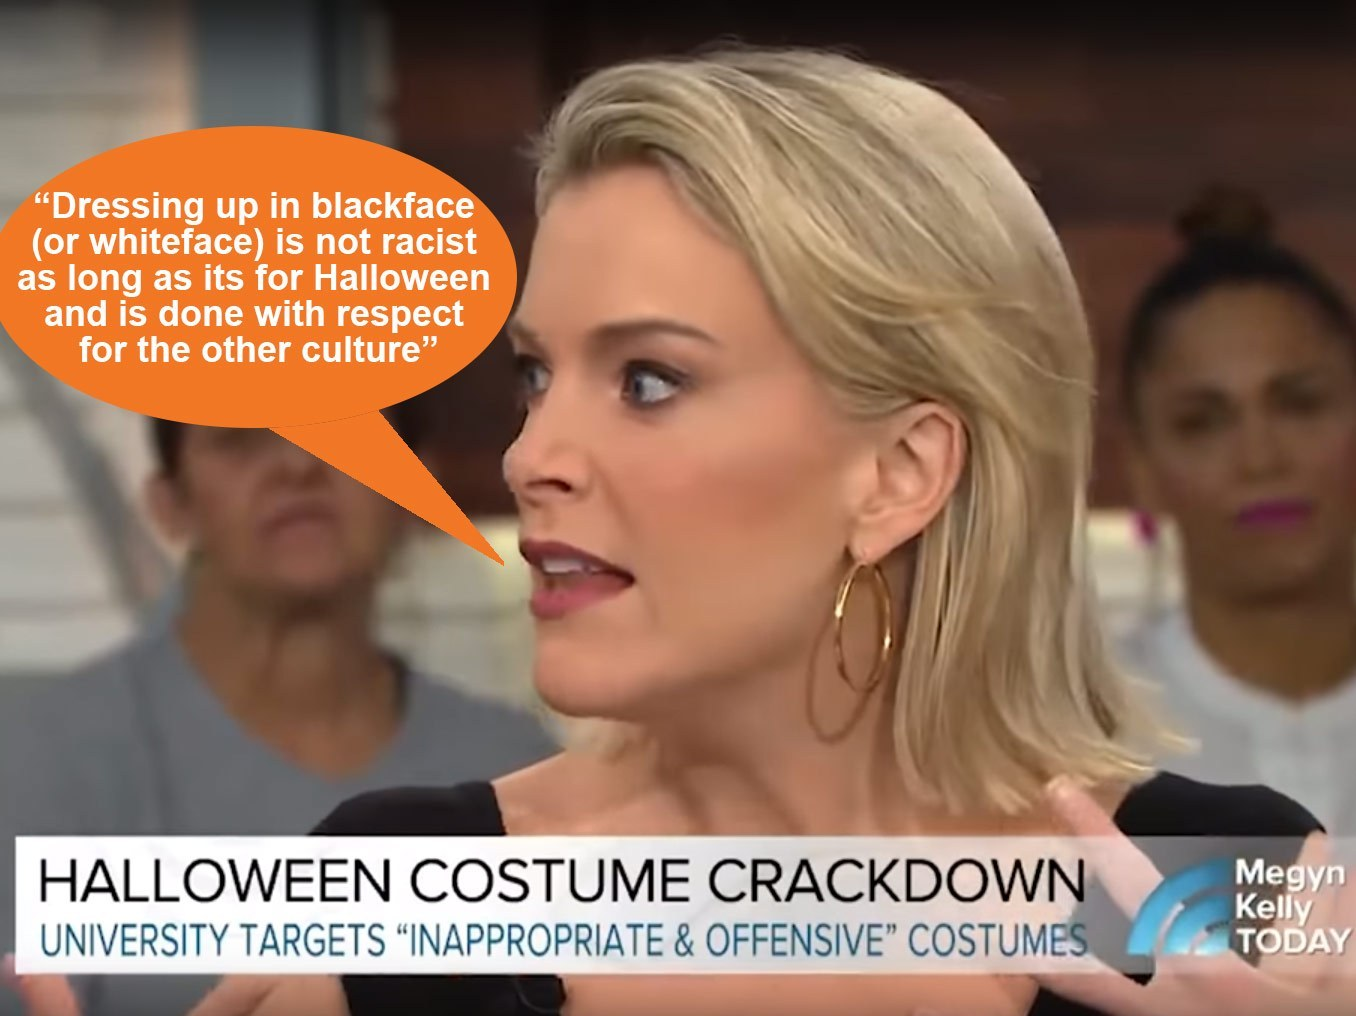 Megyn Kelly's controversial blackface comments